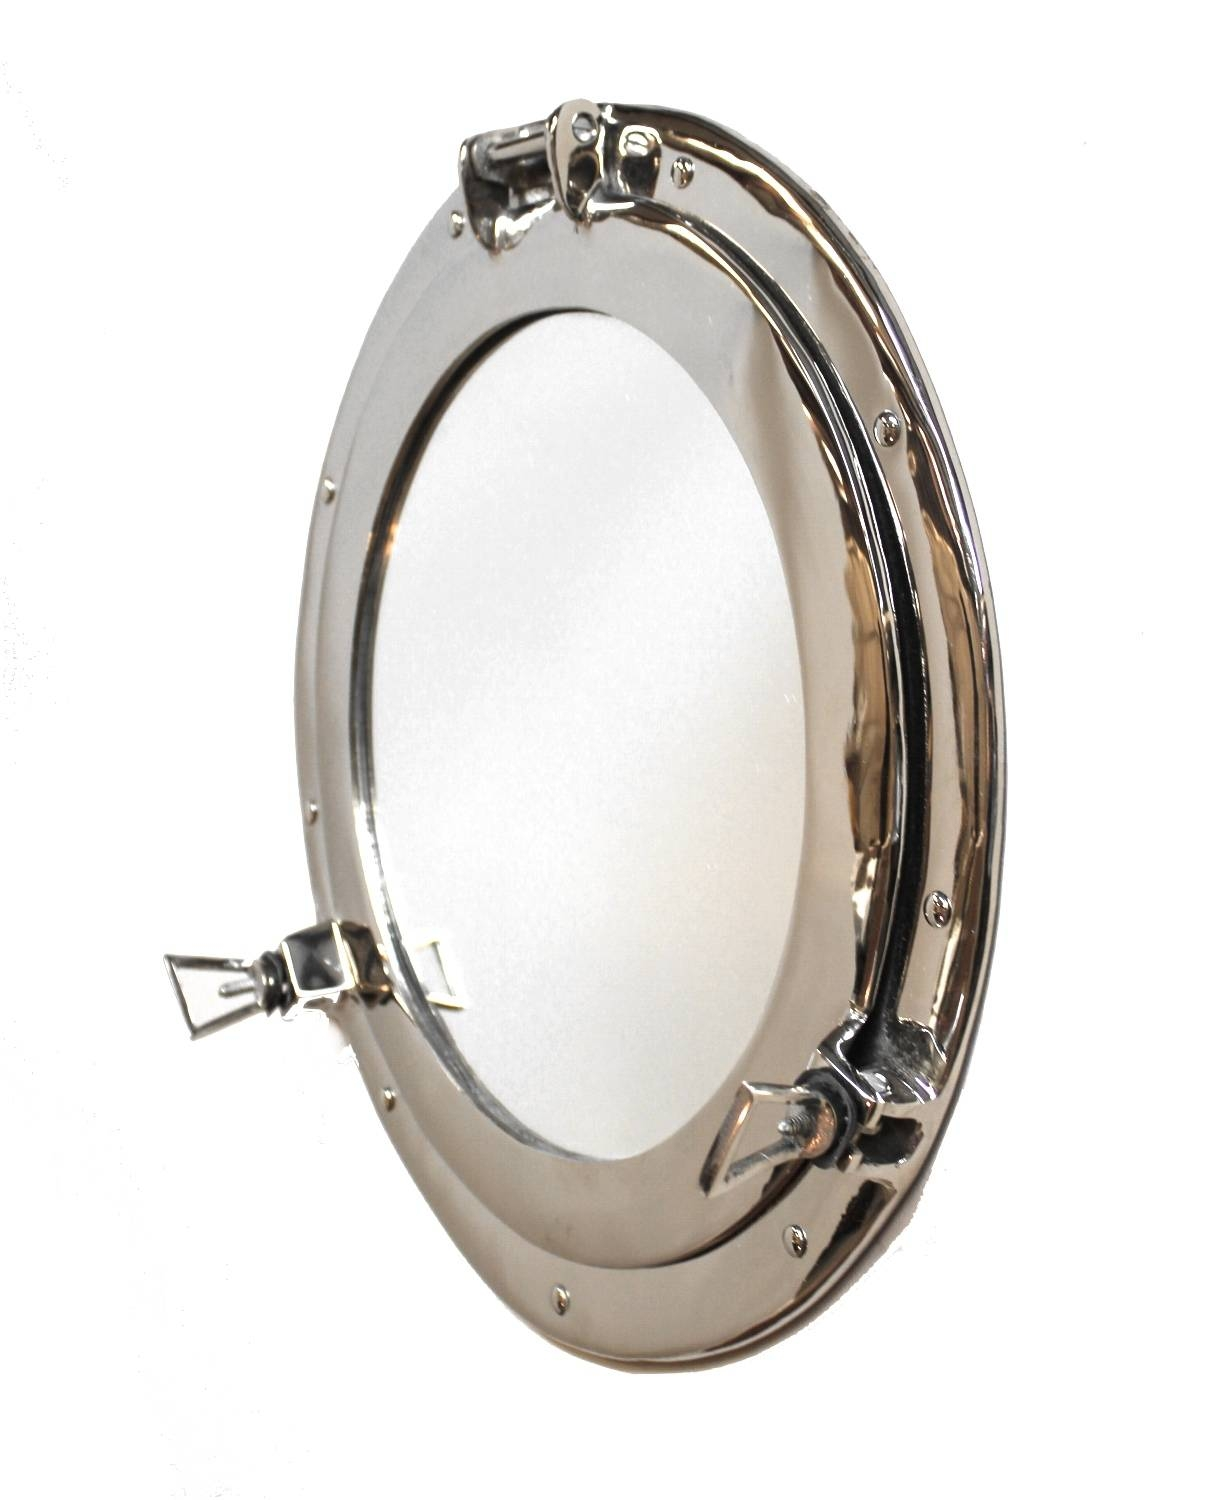 Silver Porthole Mirror Over Solid Brass High Quality Nickel Chrome Intended For Chrome Porthole Mirrors (View 24 of 25)